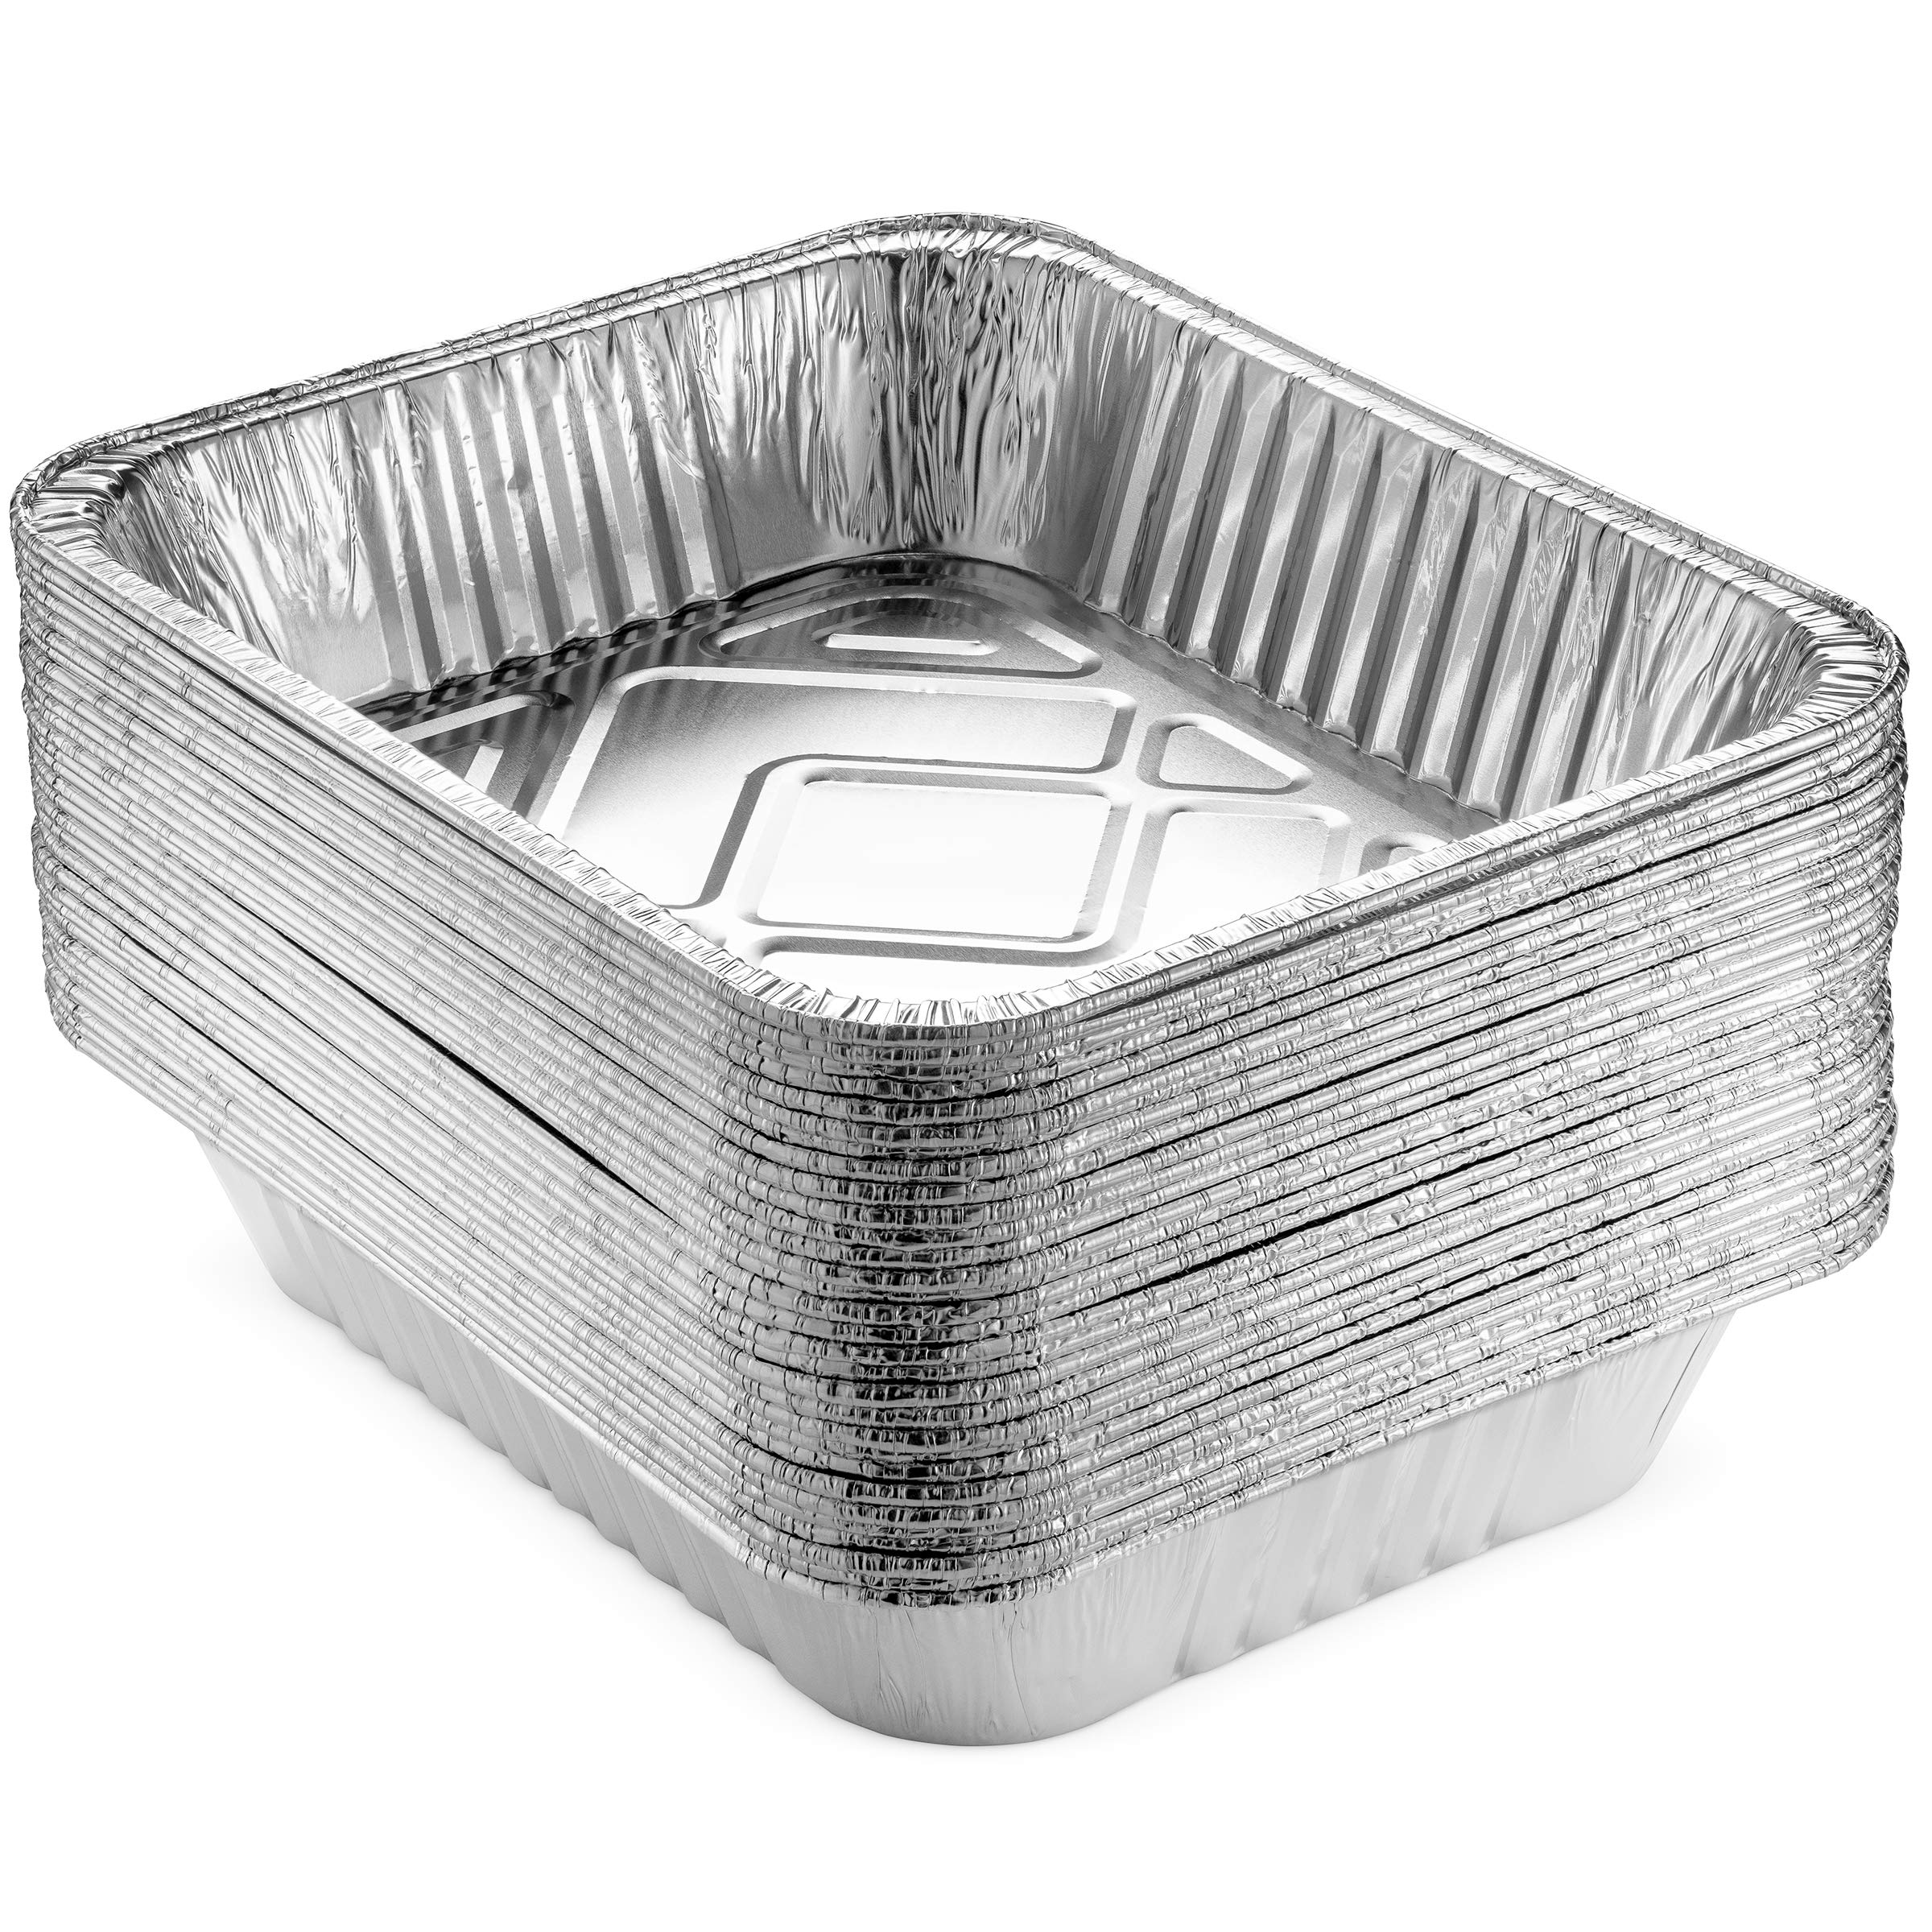 NYHI 9 x 13 '' Aluminum Foil Pans (30 Pack) | Durable Disposable Grill Drip Grease Tray | Half-Size Deep Steam Pan and Oven Buffet Trays | Food Containers for Catering, Baking, Roasting | Made in USA by NYHI